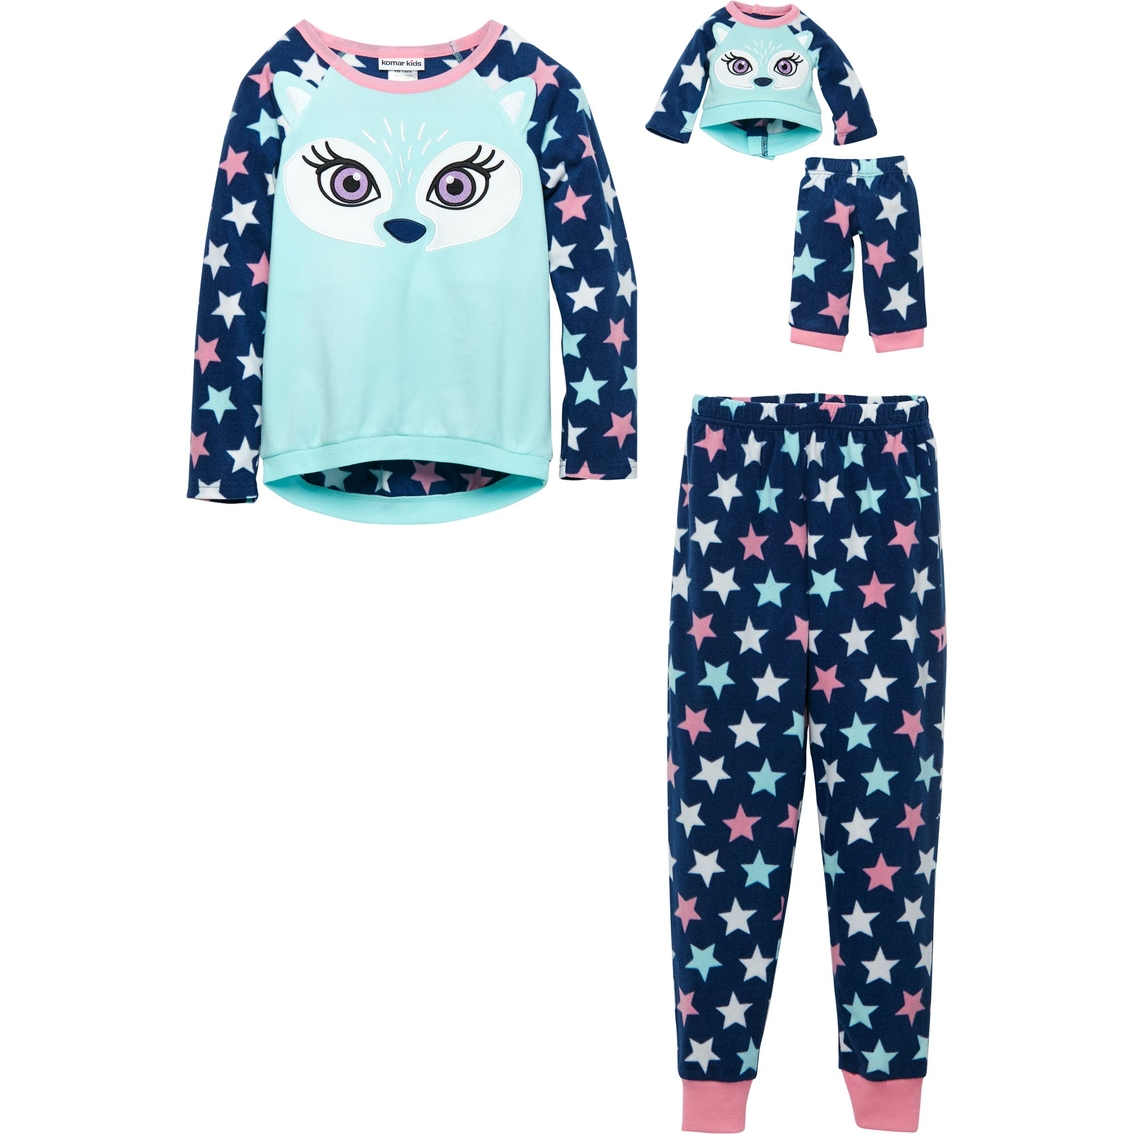 020e9861062c Komar Kids Llc Girls Fox 2 Pc. Pajama Set With Doll Pajamas